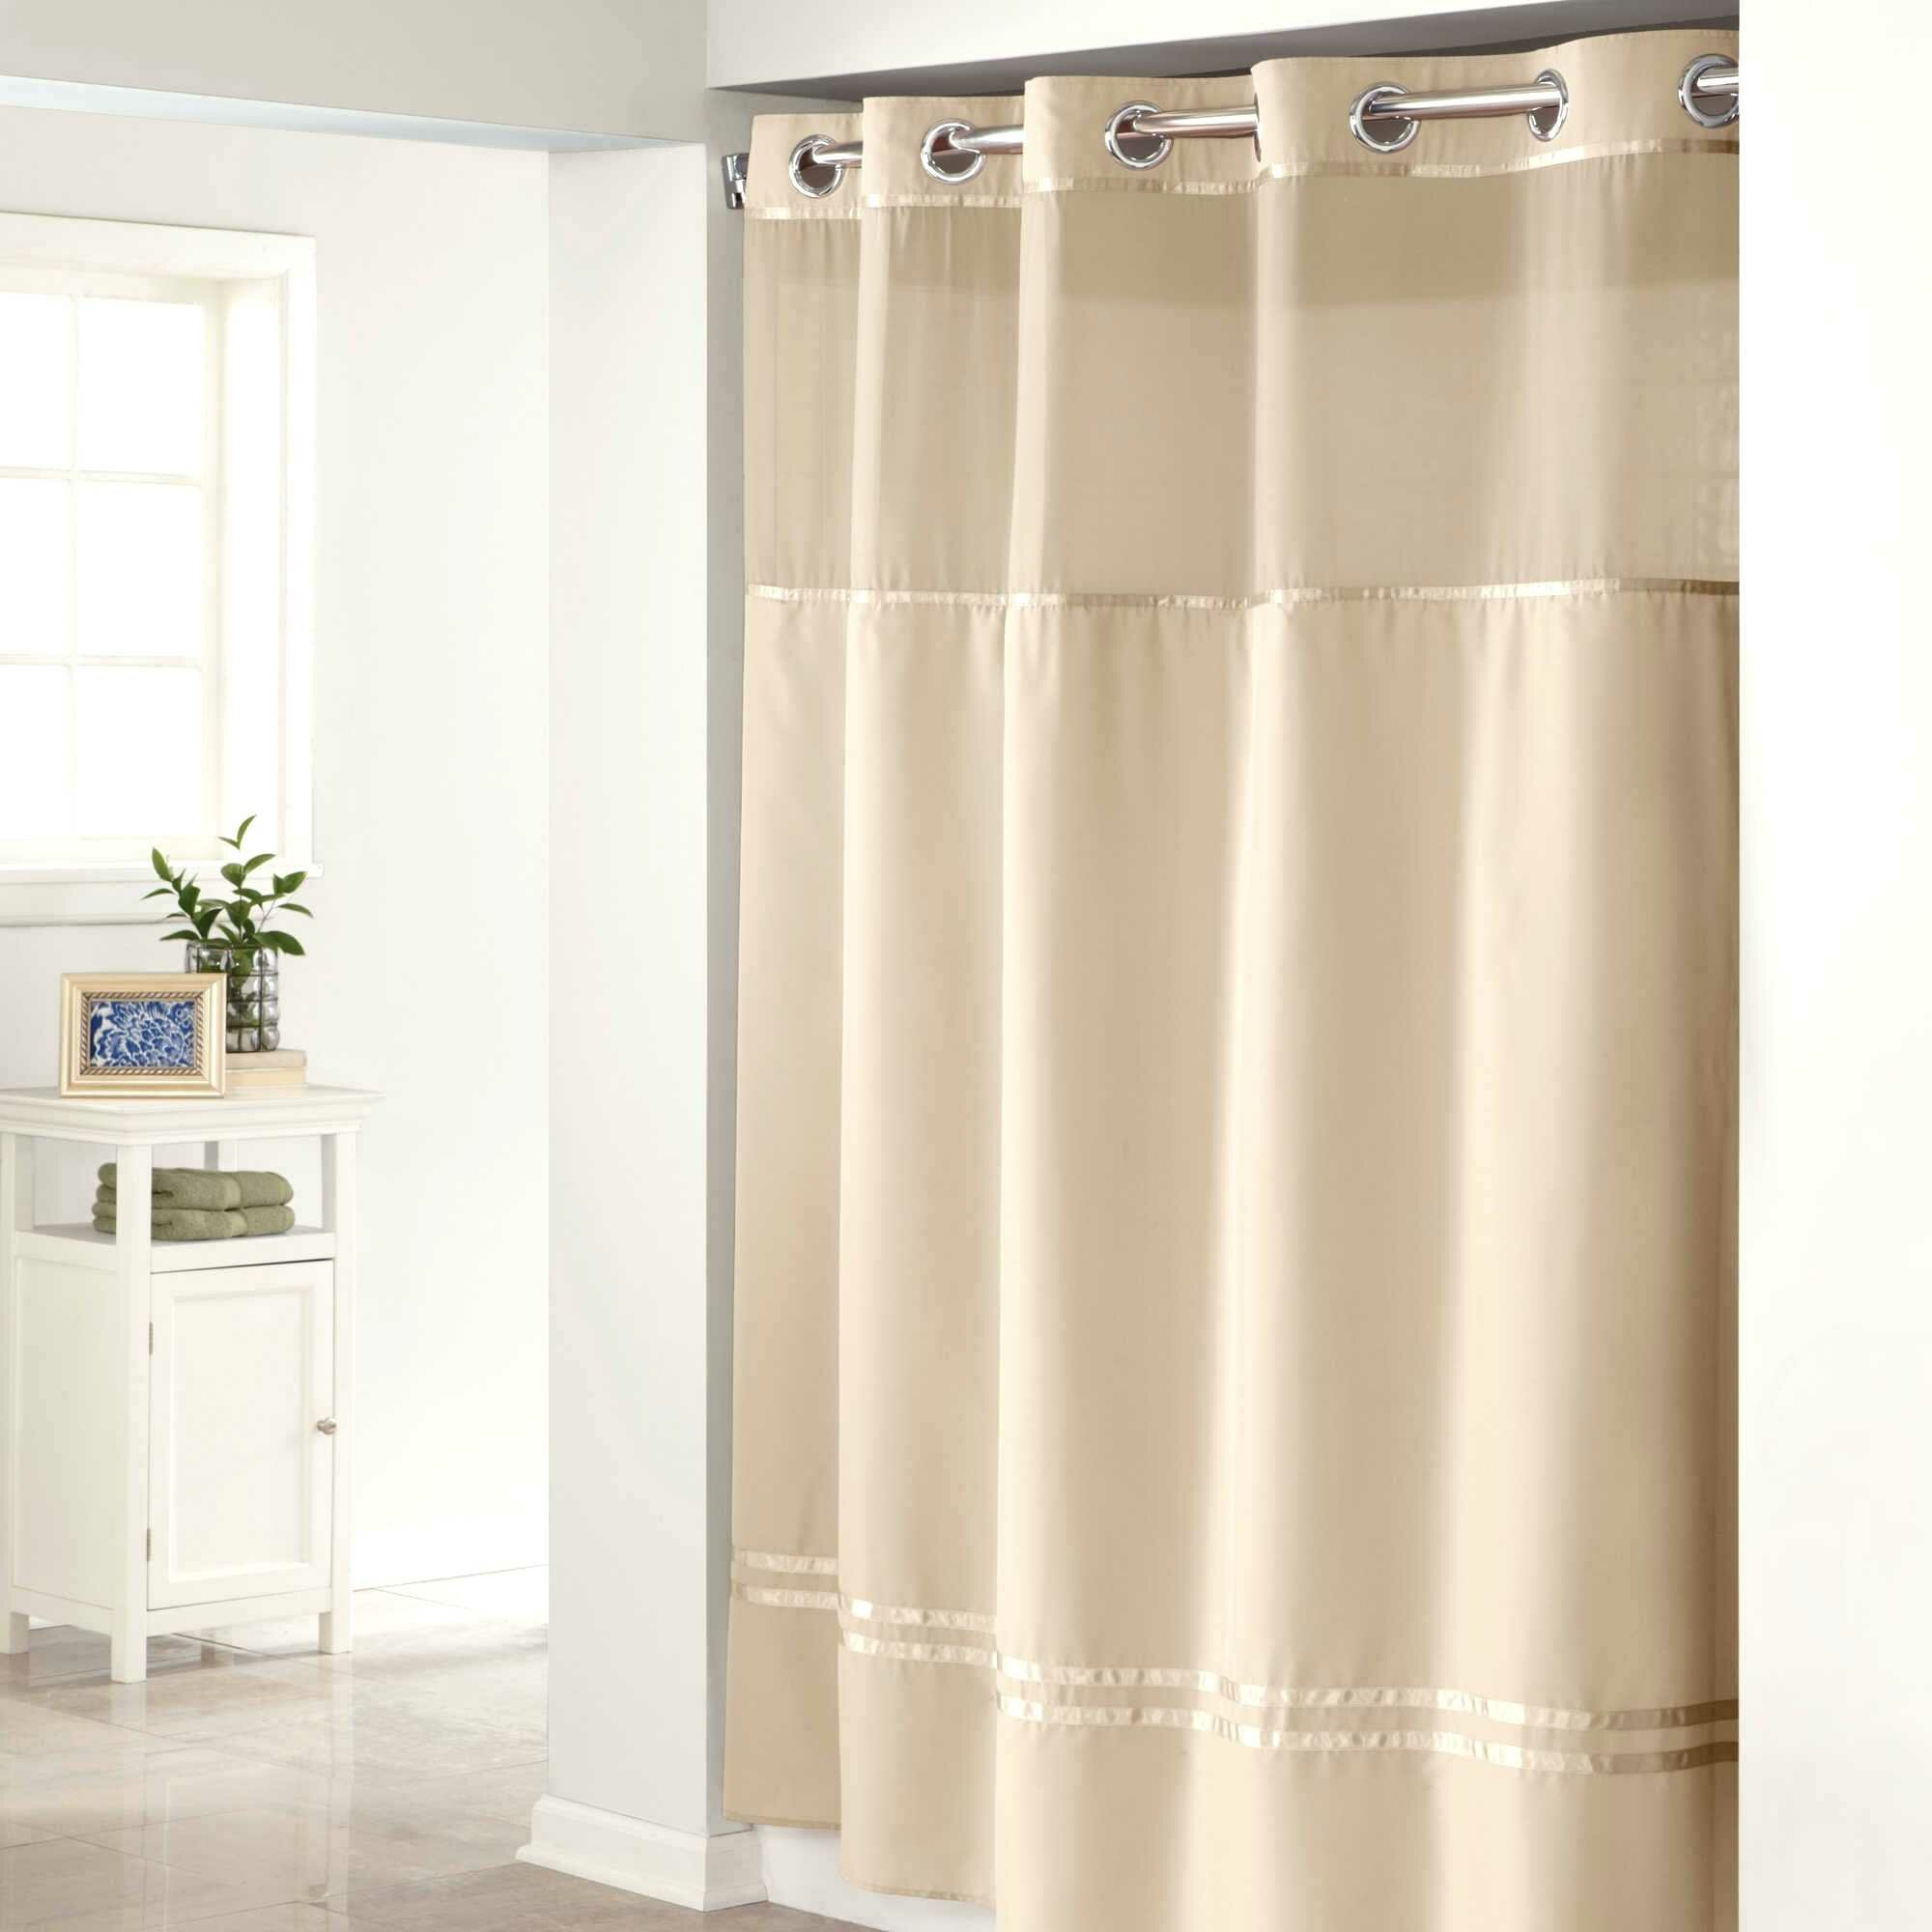 Shower Liner Walmart | 84 Inch Shower Curtain Walmart | Walmart Shower Curtain